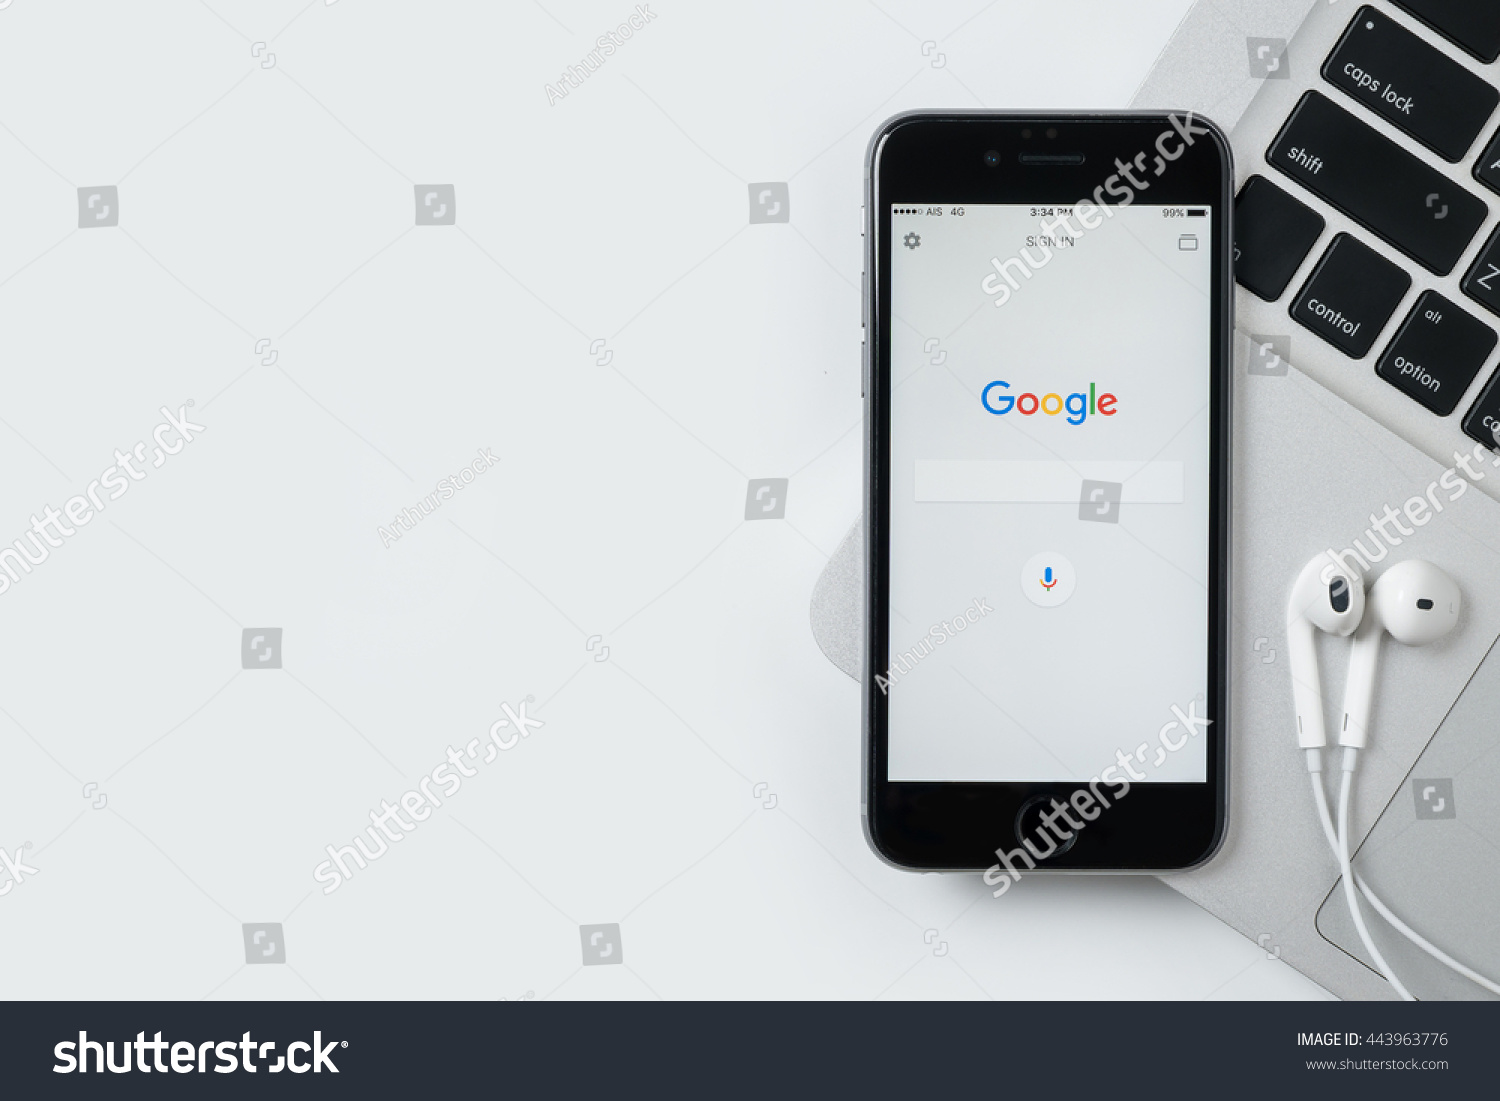 how to search an image on google iphone